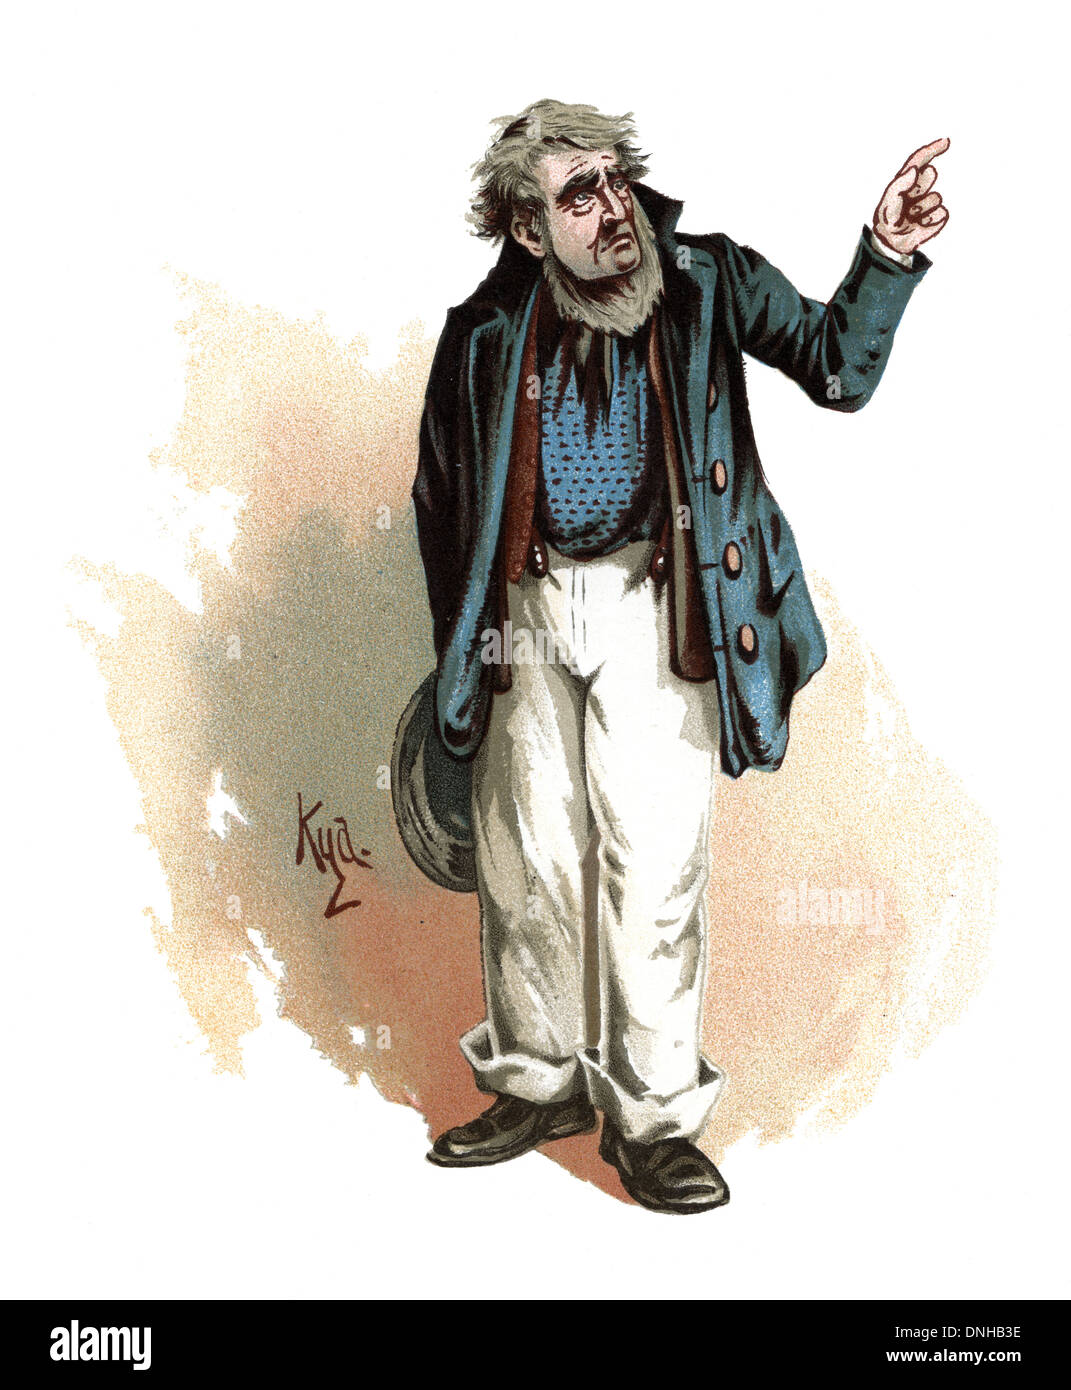 mr peggotty character from david copperfield by charles dickens character from david copperfield by charles dickens